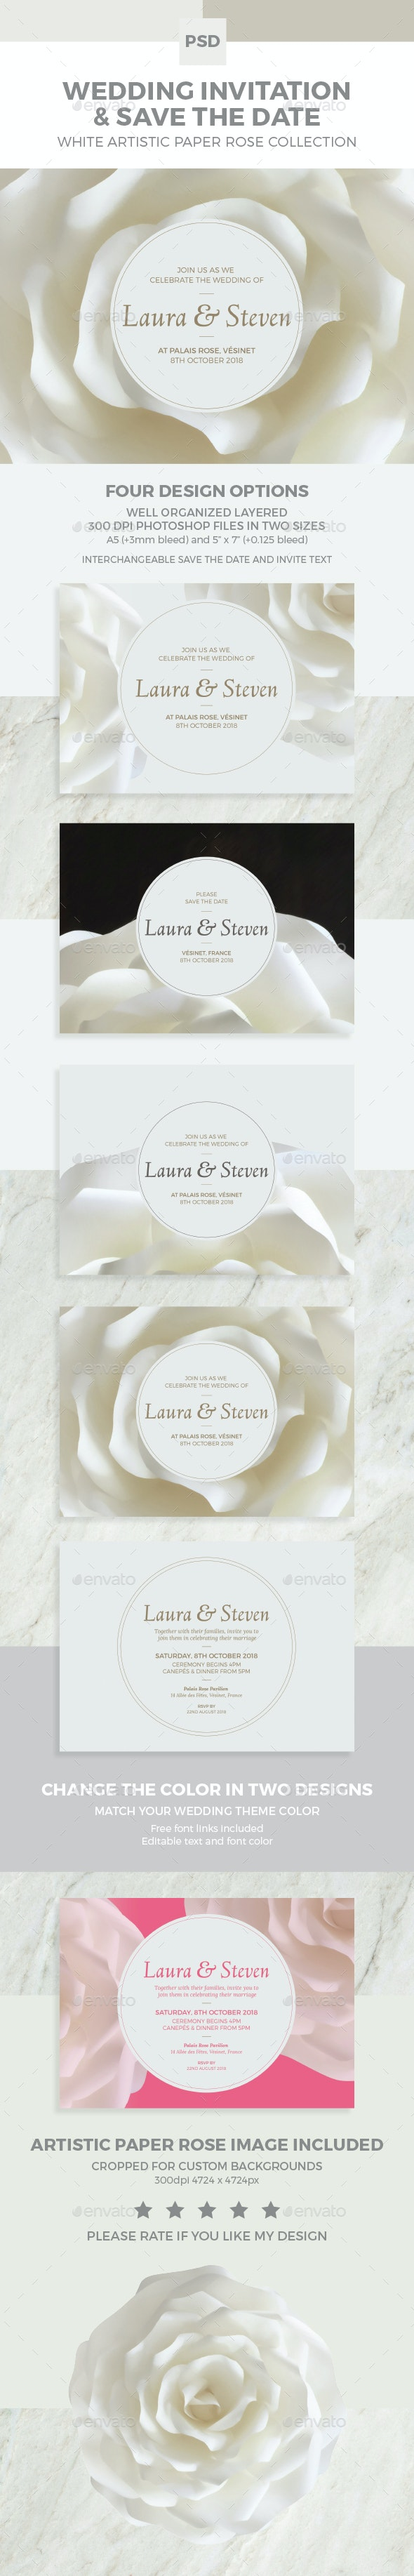 Wedding Invitation and Save the Date White Paper Rose - Weddings Cards & Invites